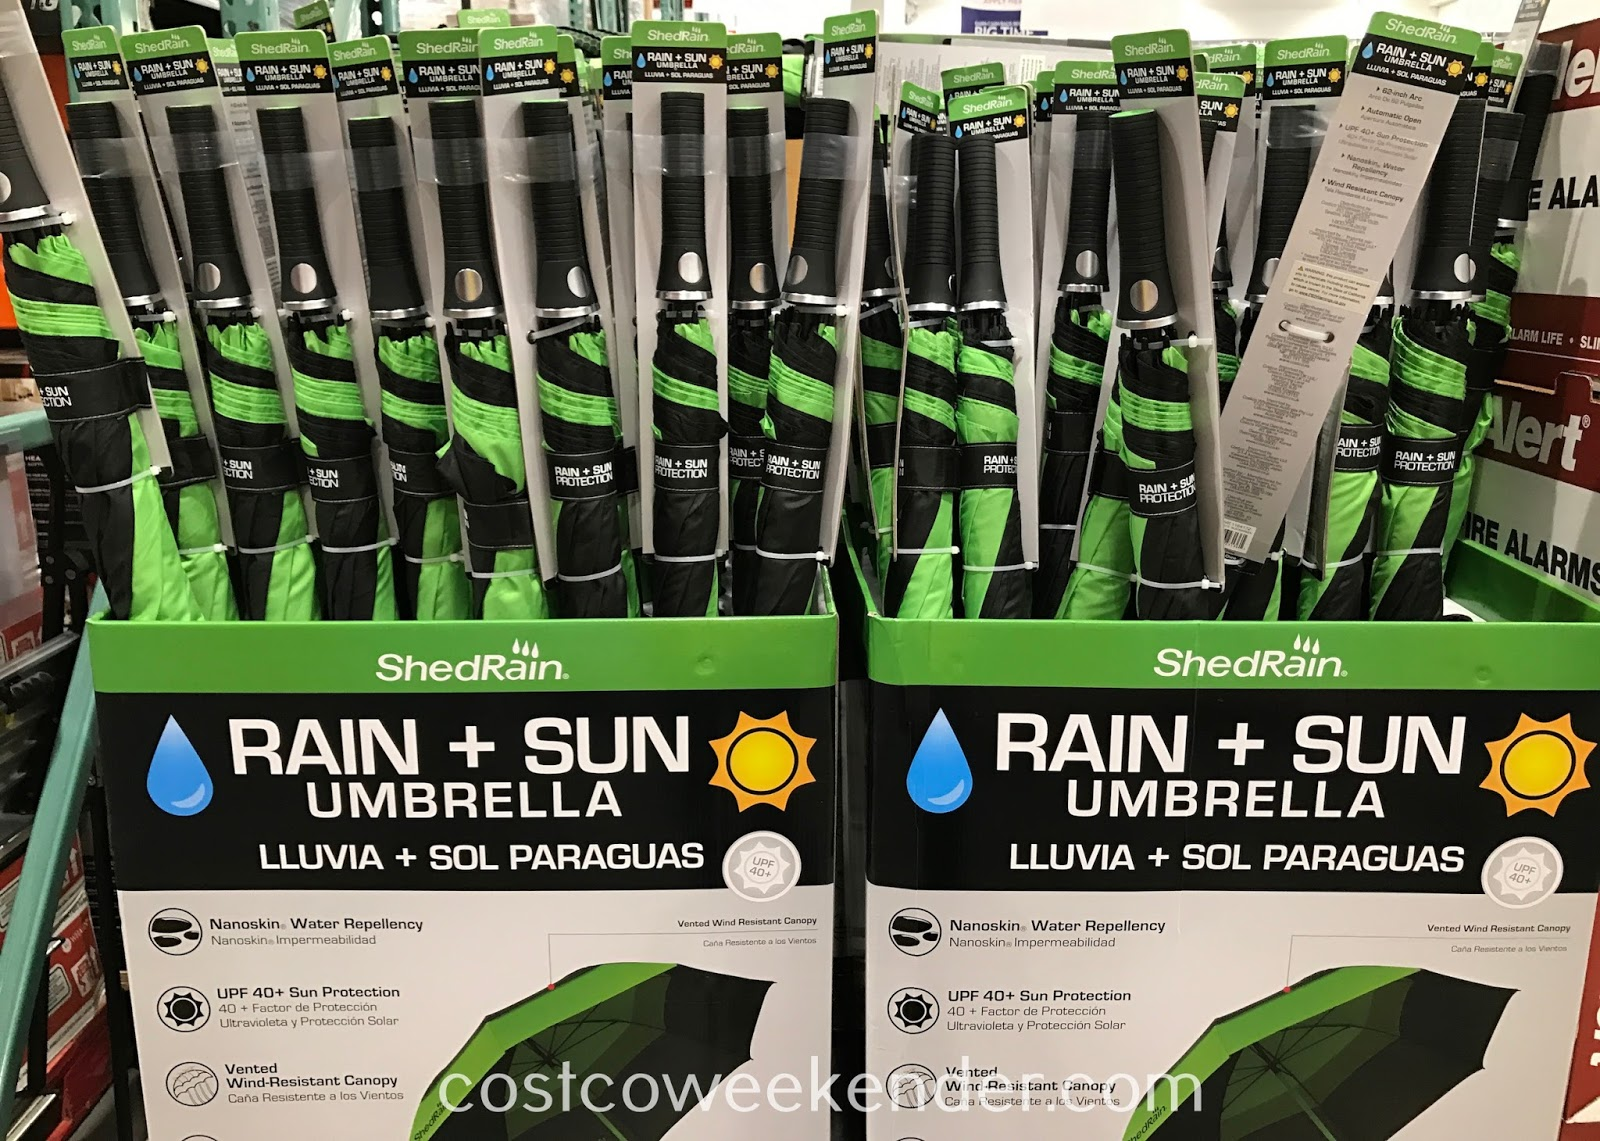 Costco 1164172 - ShedRain Rain and Sun Golf Umbrella: just in time for the winter season